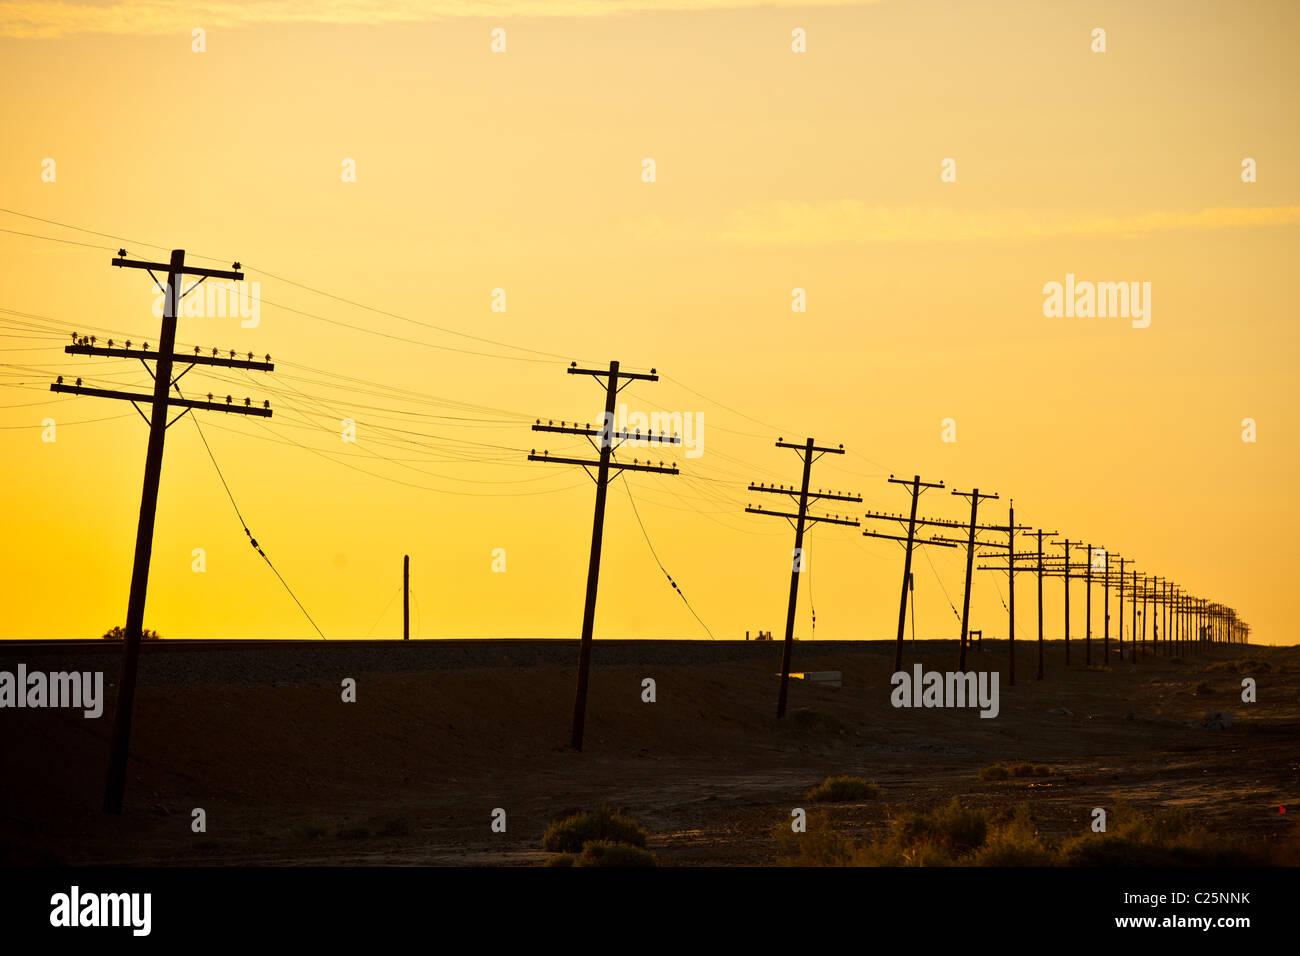 Endless line of telephone poles along the coast of the Salton Sea Imperial Valley, CA. Stock Photo